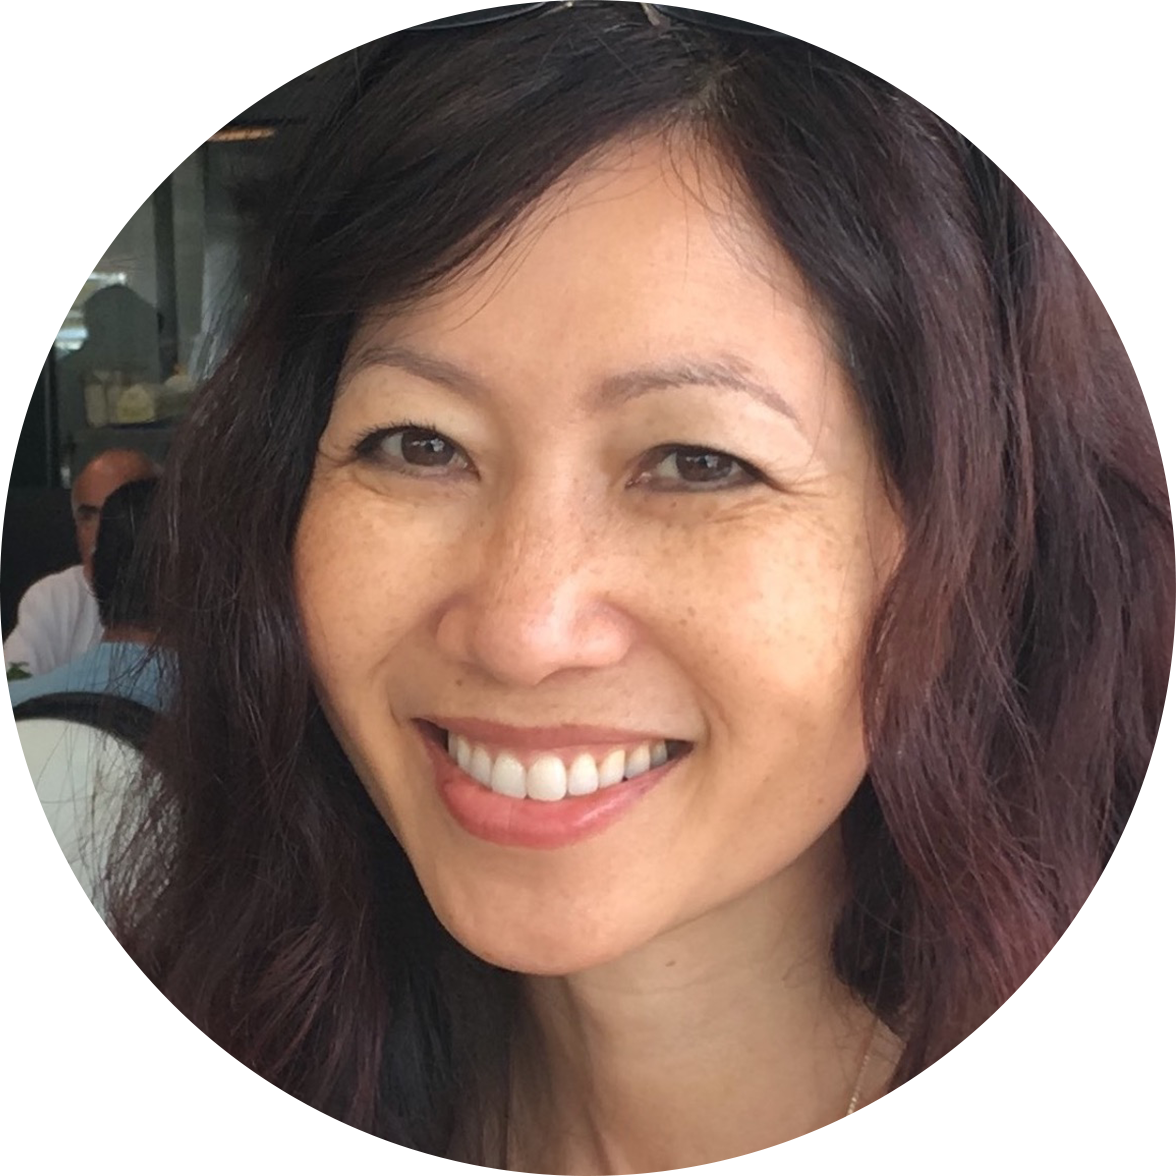 Dr. Kimberly Nguyen     Co-founder, Business Development    Practicing dentist of 20+ years. Founded 2 scratch practices.